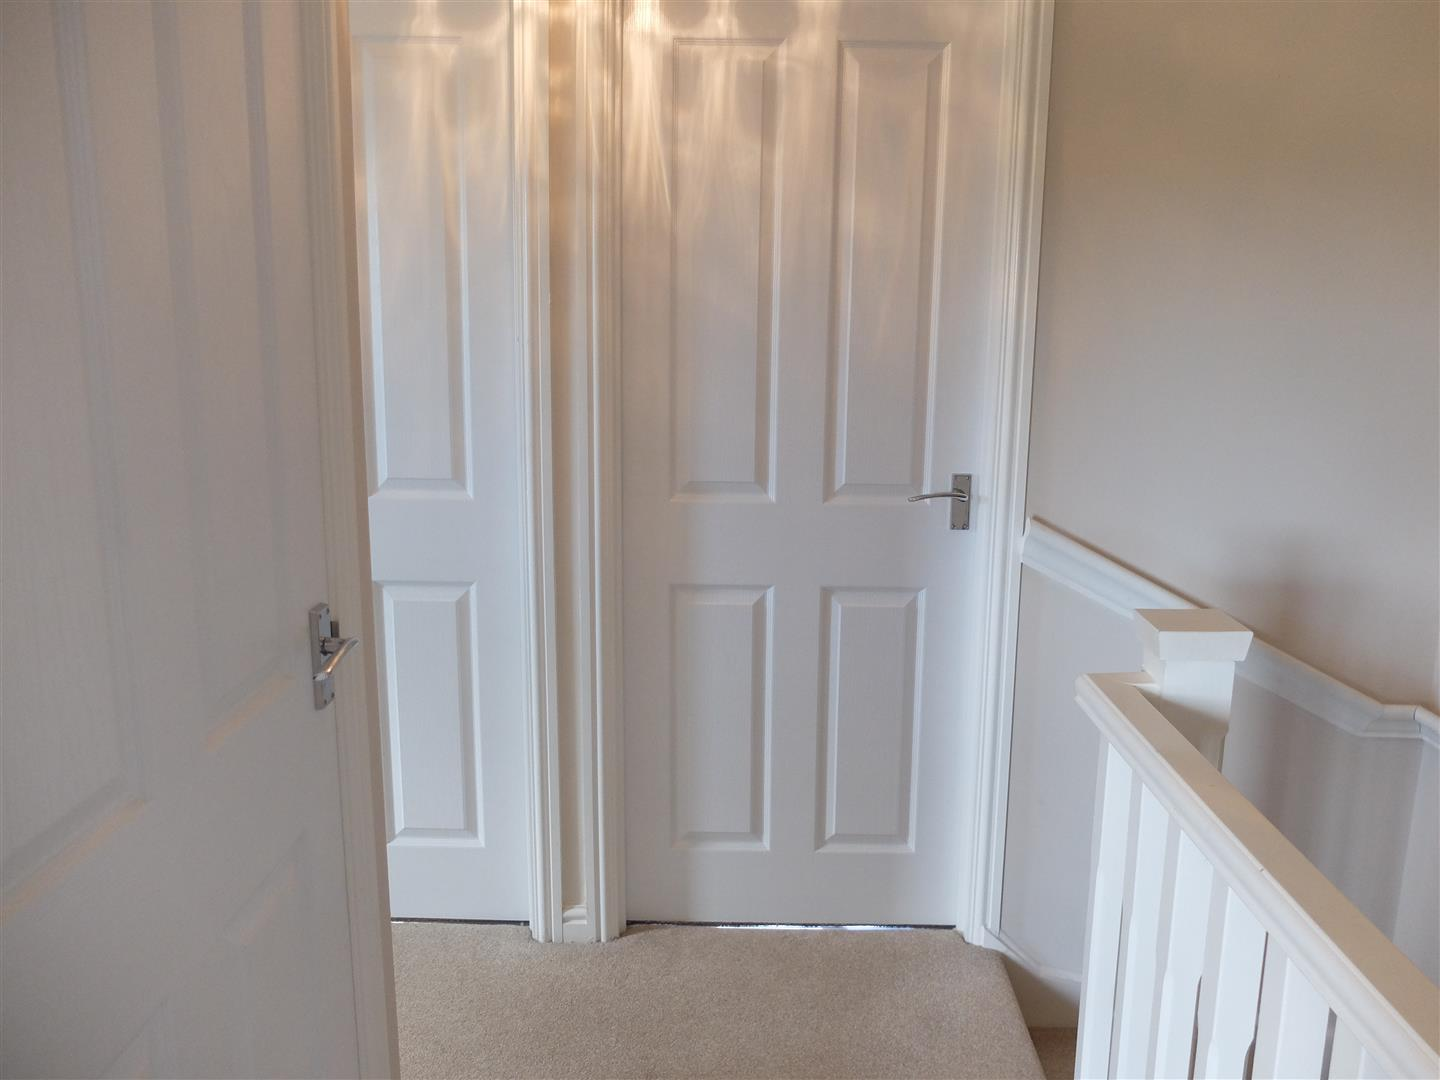 3 Bedrooms House - Semi-Detached For Sale 26 Arnison Close Carlisle 150,000